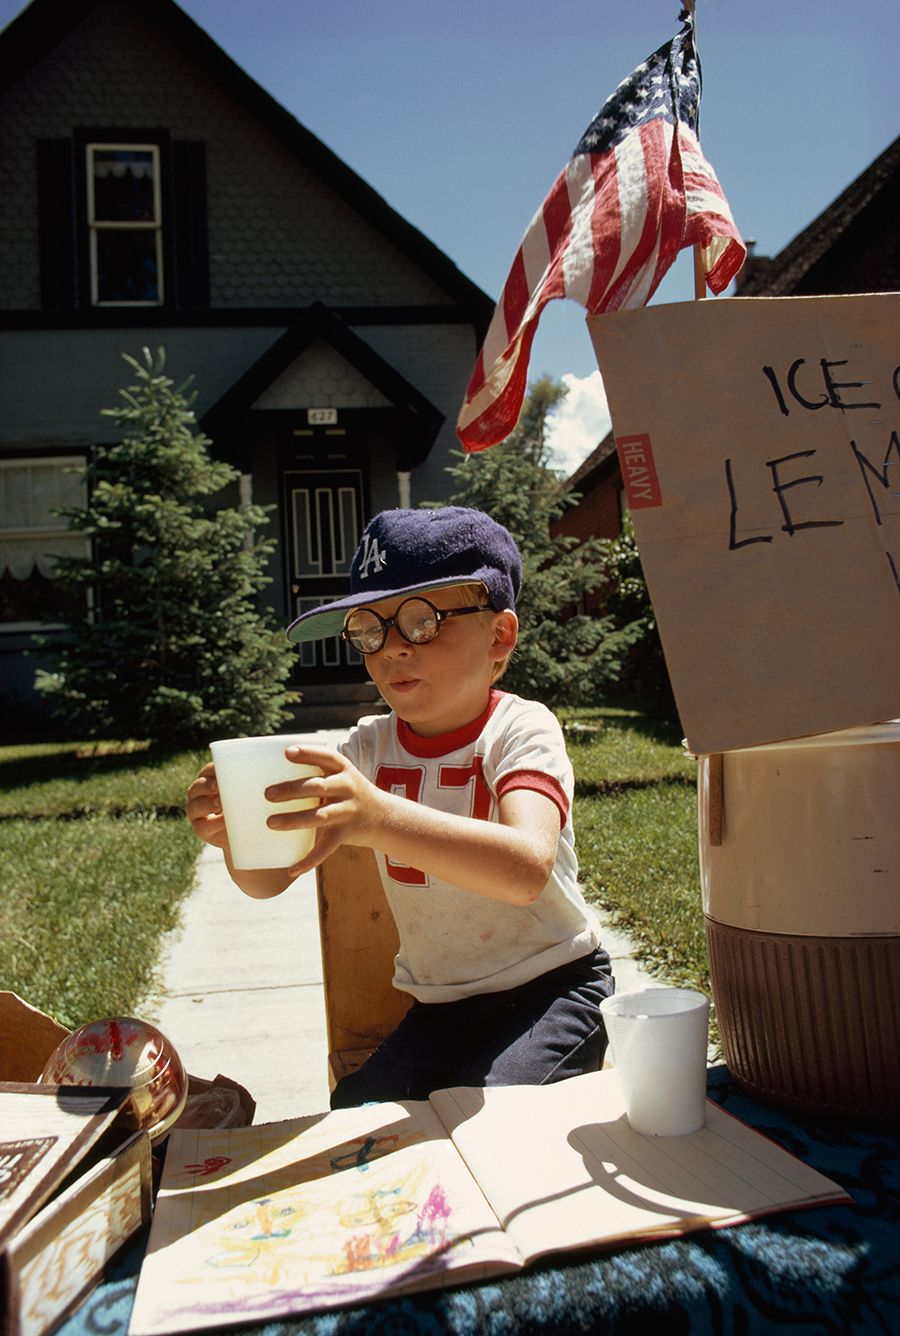 A boy sells lemonade from his front yard stand on Main Street in Aspen, Colorado, 1973.Photograph by Dick Durrance II, National Geographic Creative